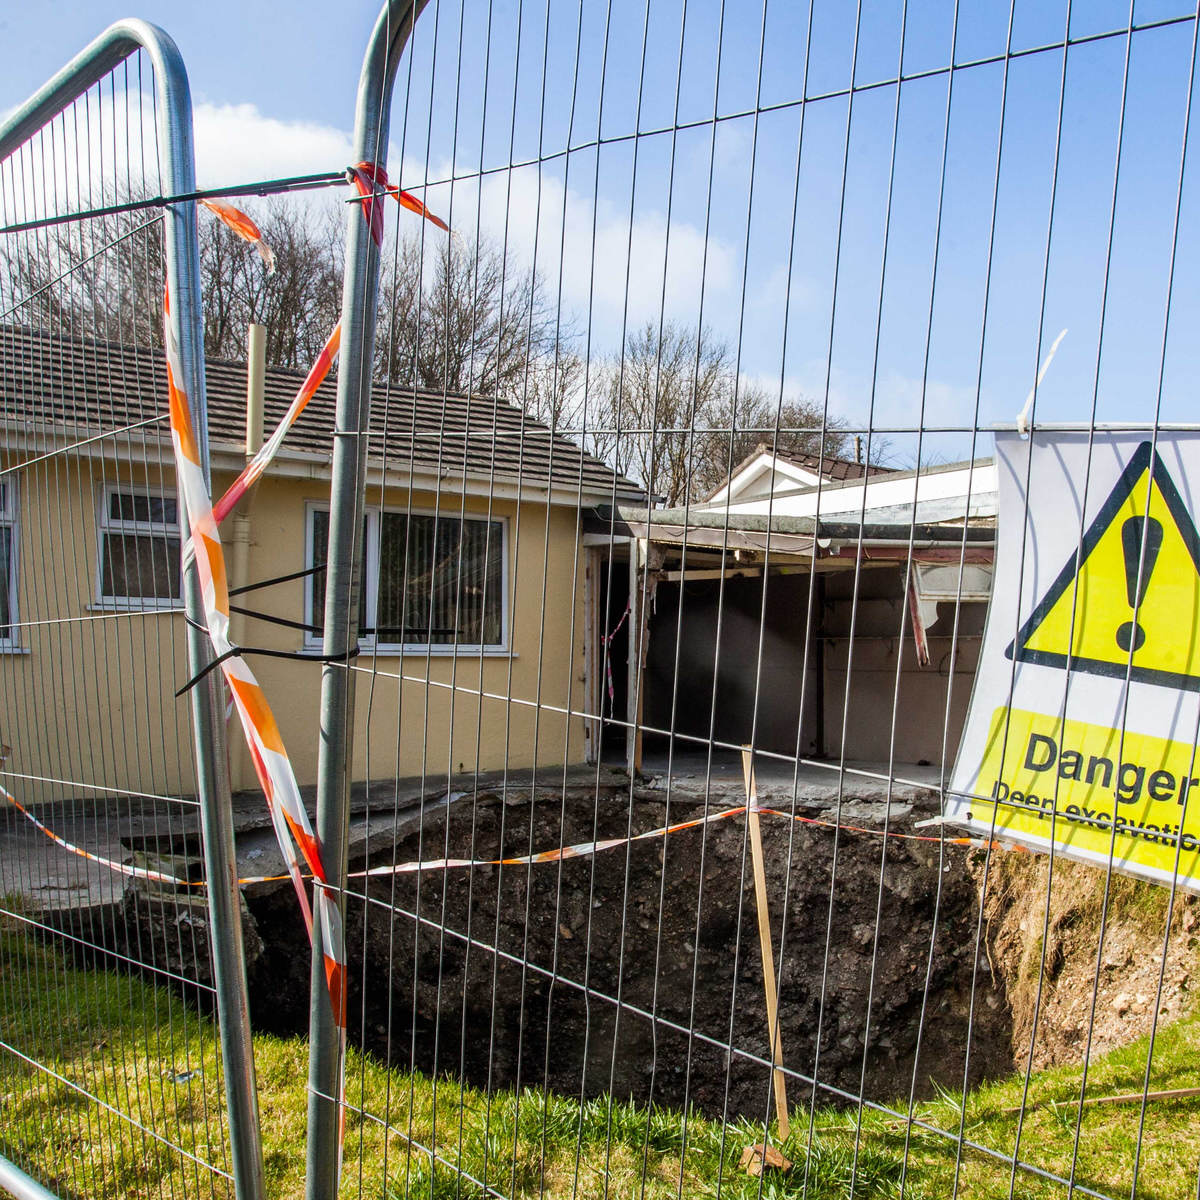 SWNS MINESHAFT CORNWALL 08 Giant Sinkhole Opens Up Outside UK Home, Its F*cking Terrifying